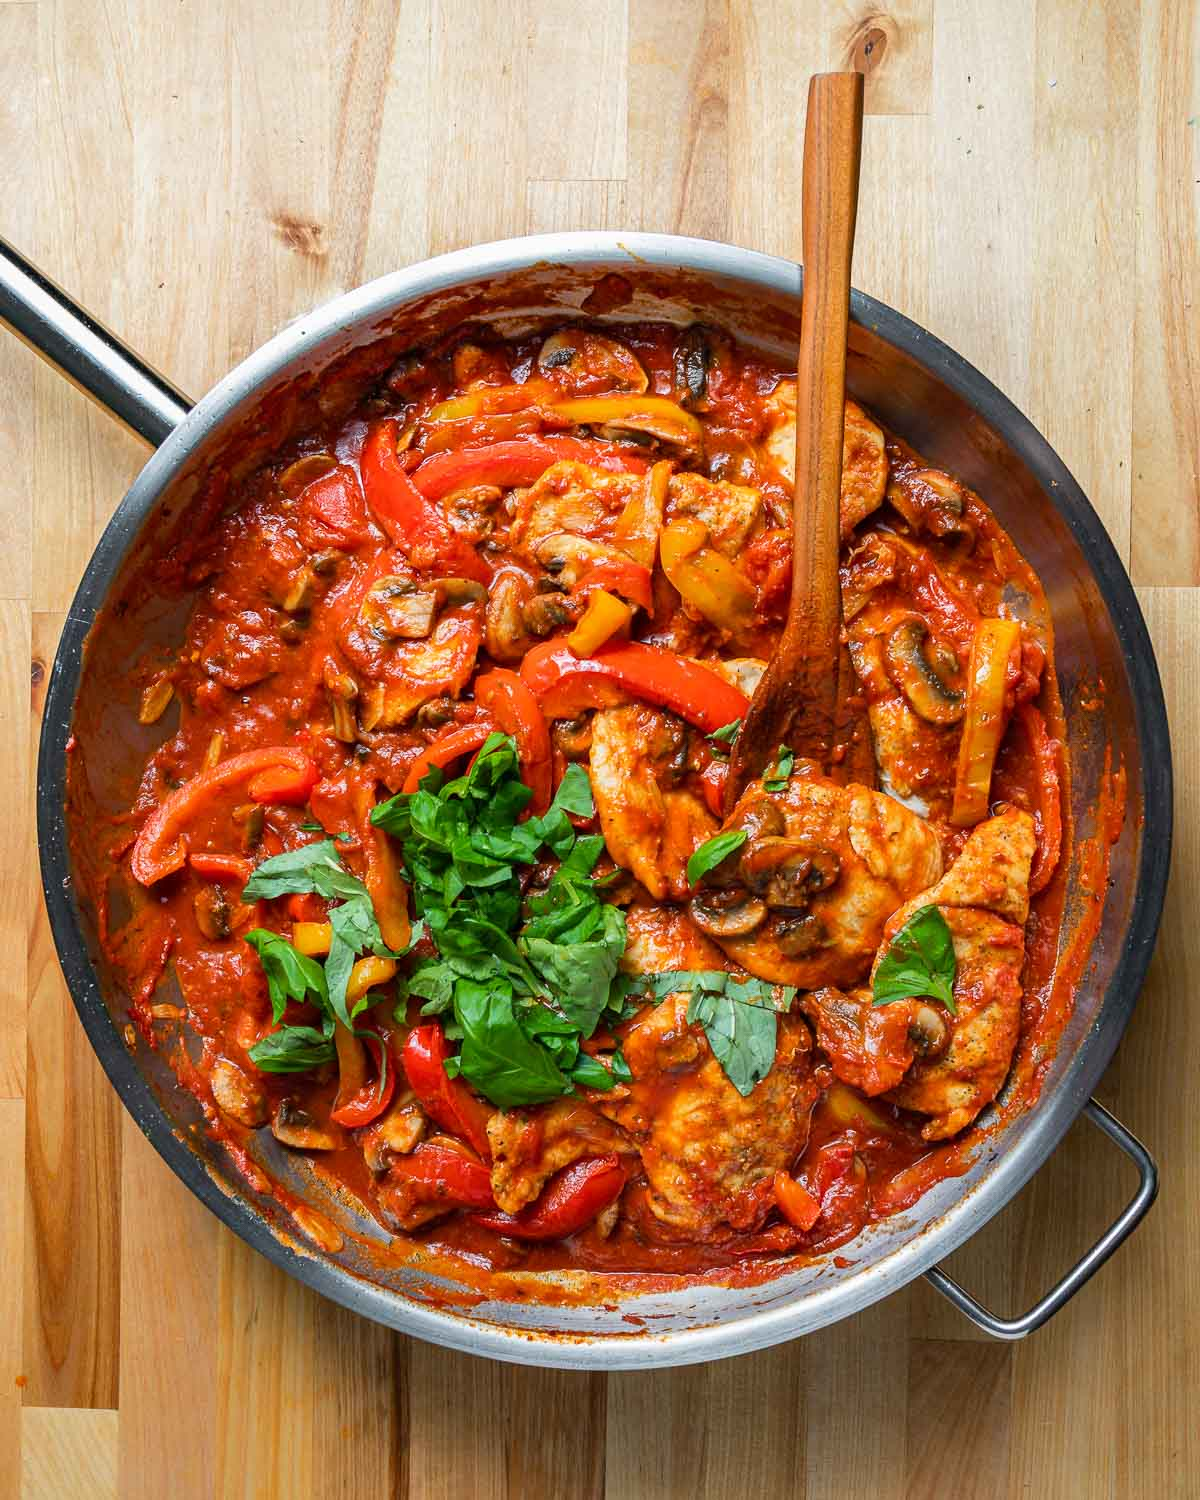 Overheat shot of large pan with chicken and peppers in tomato sauce.